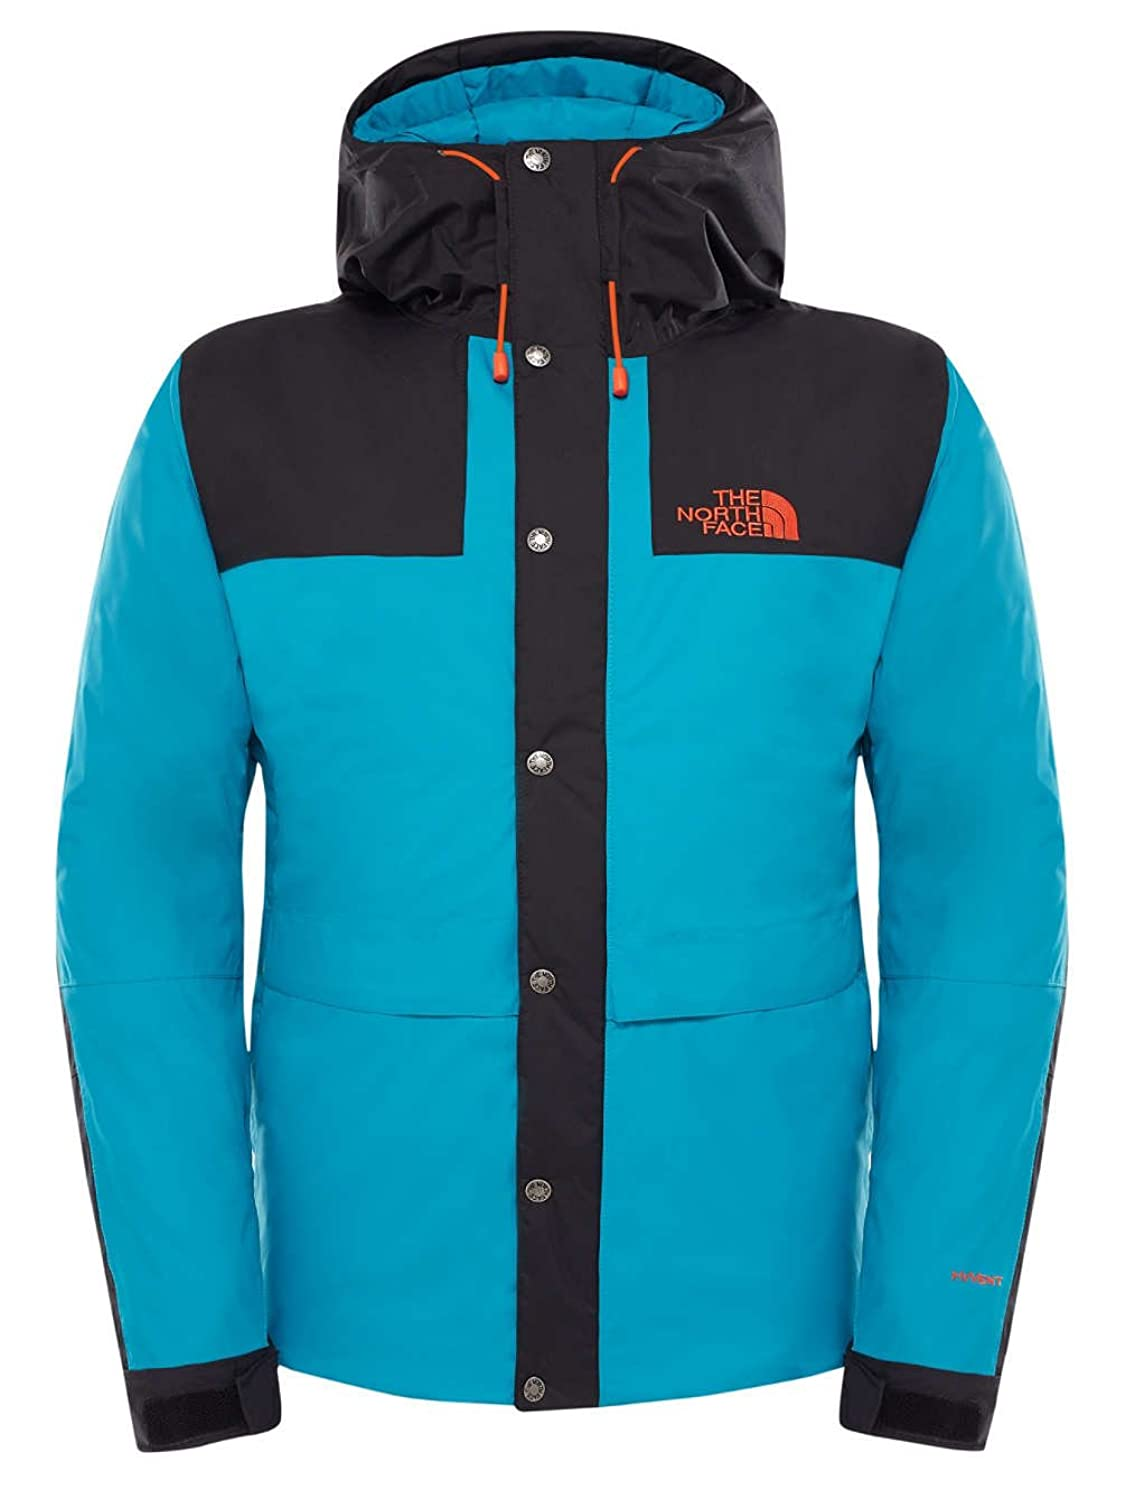 Herren Jacke The North Face 1985 Rage Insulated Mountain Jacket online bestellen